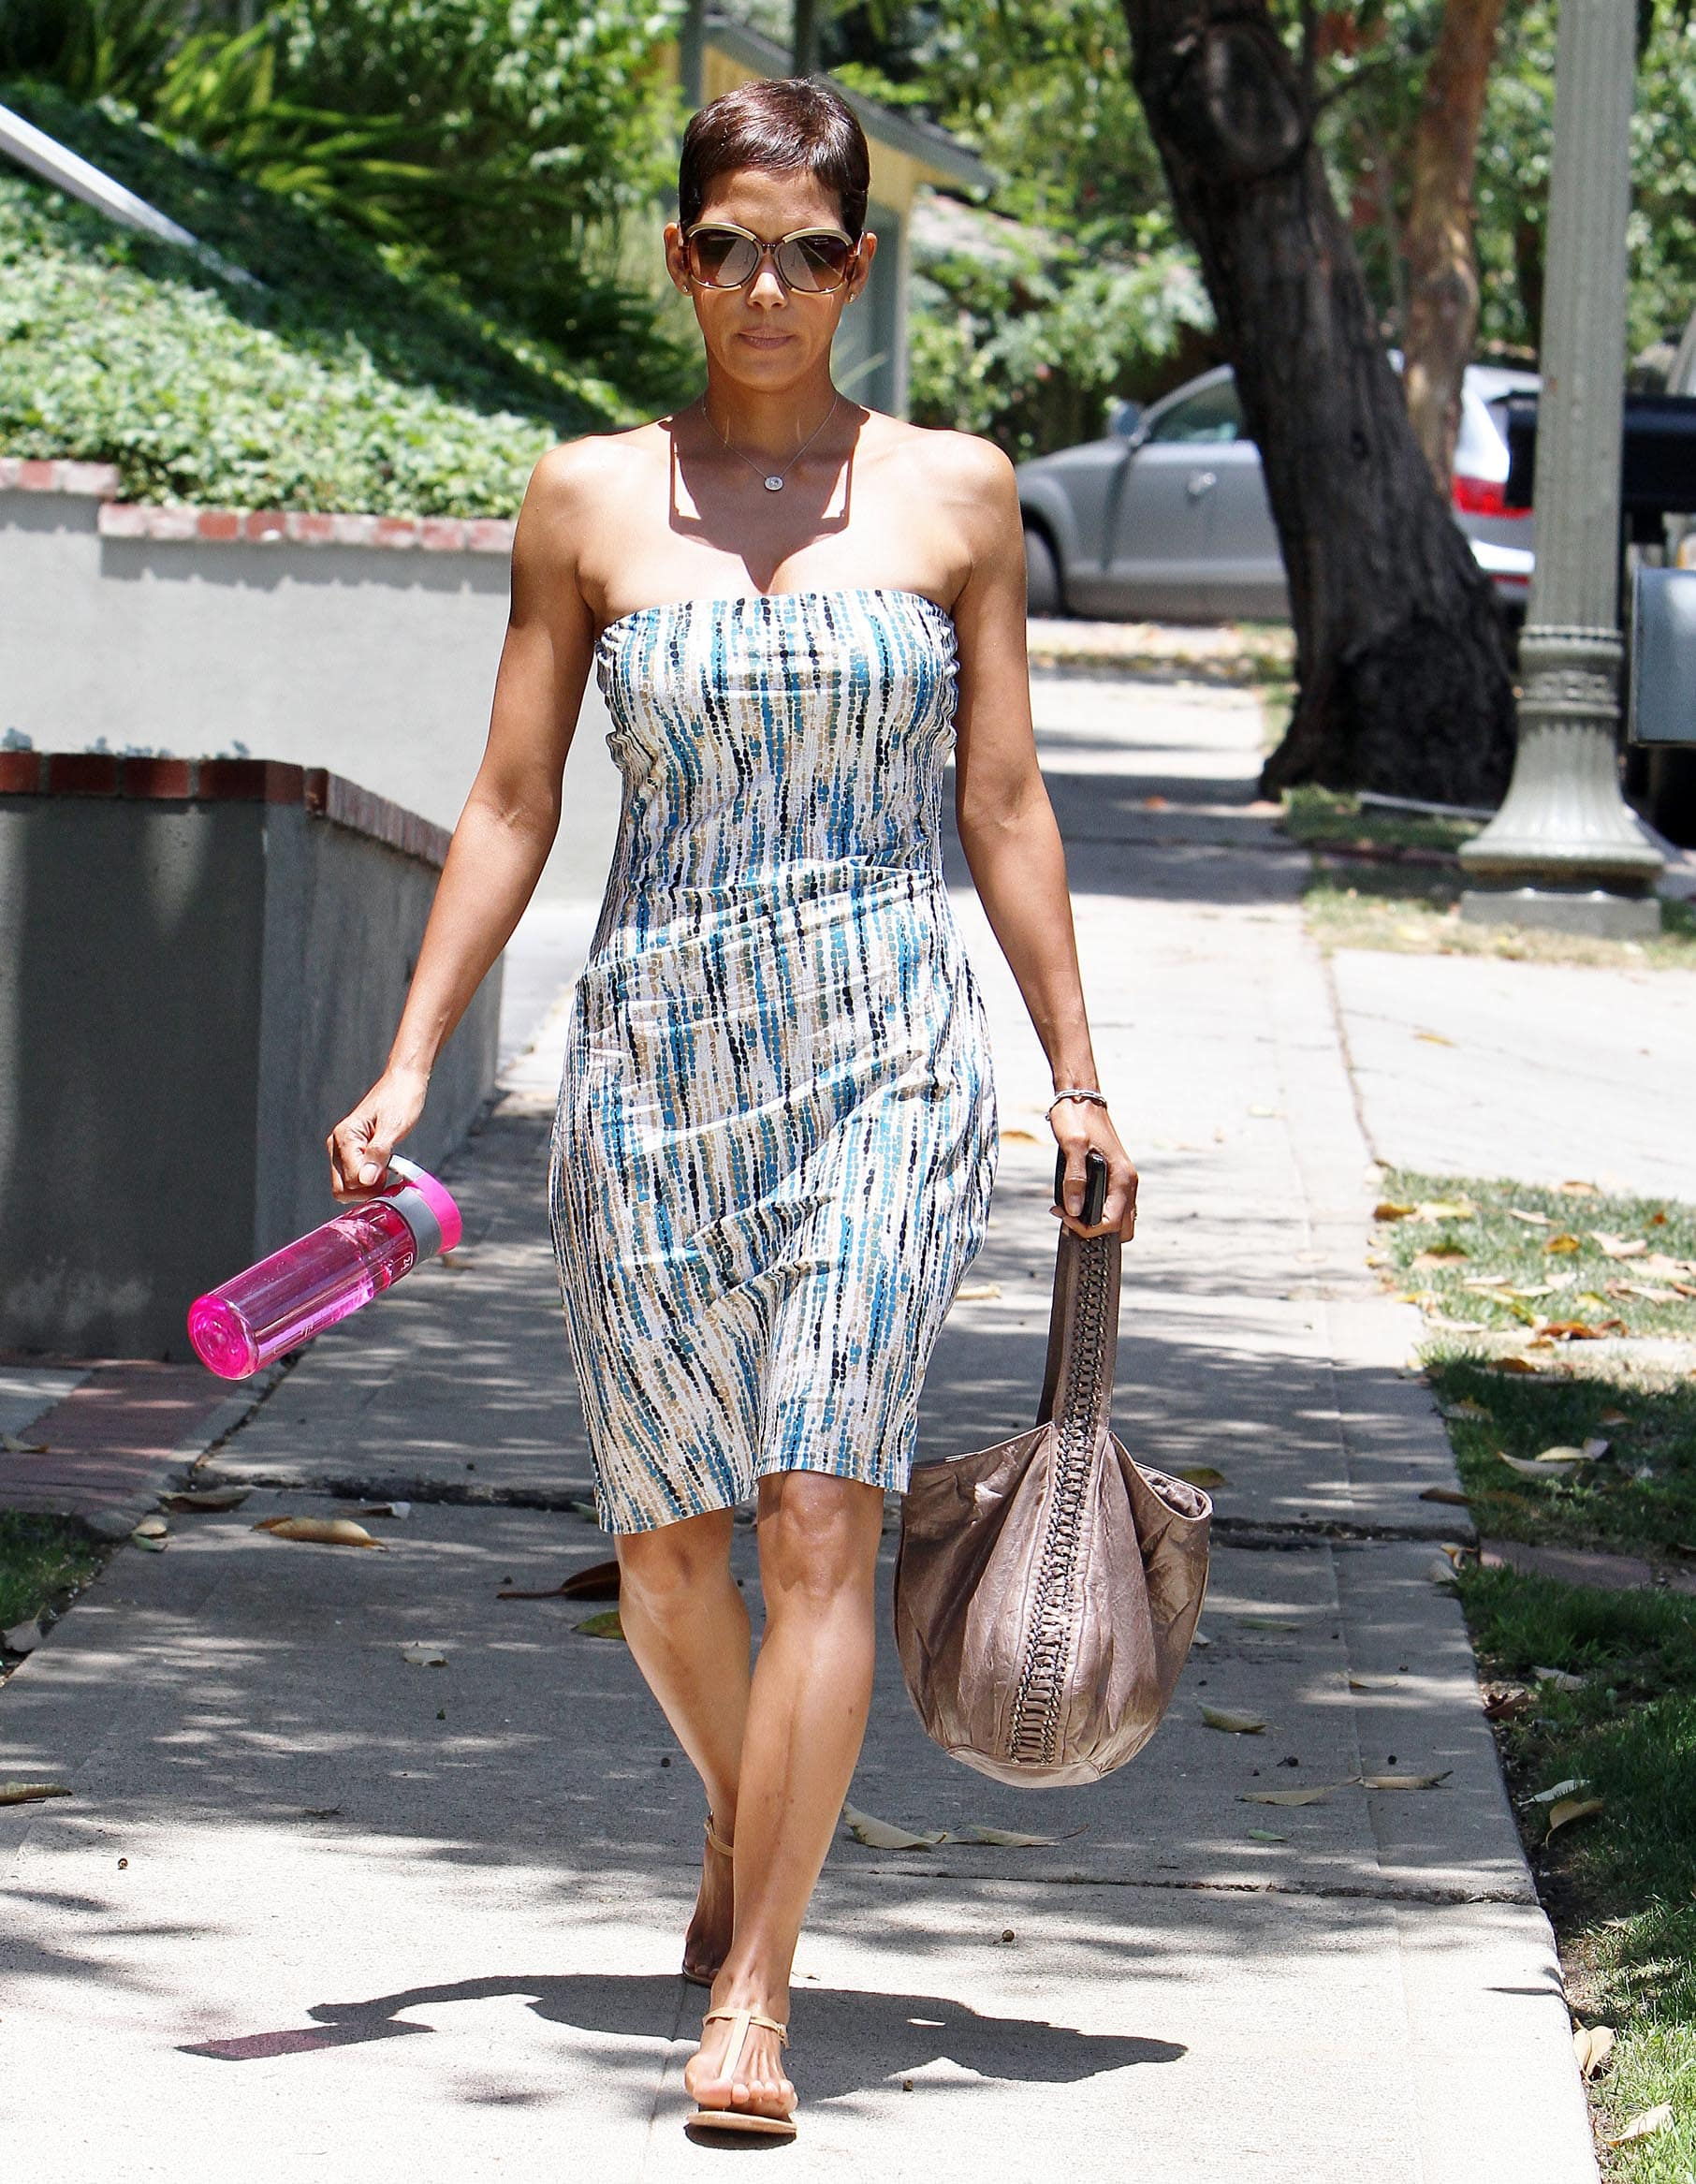 49 Sexy Halle Berry Feet Pictures Will Get You All Sweating With The Hotness-1511